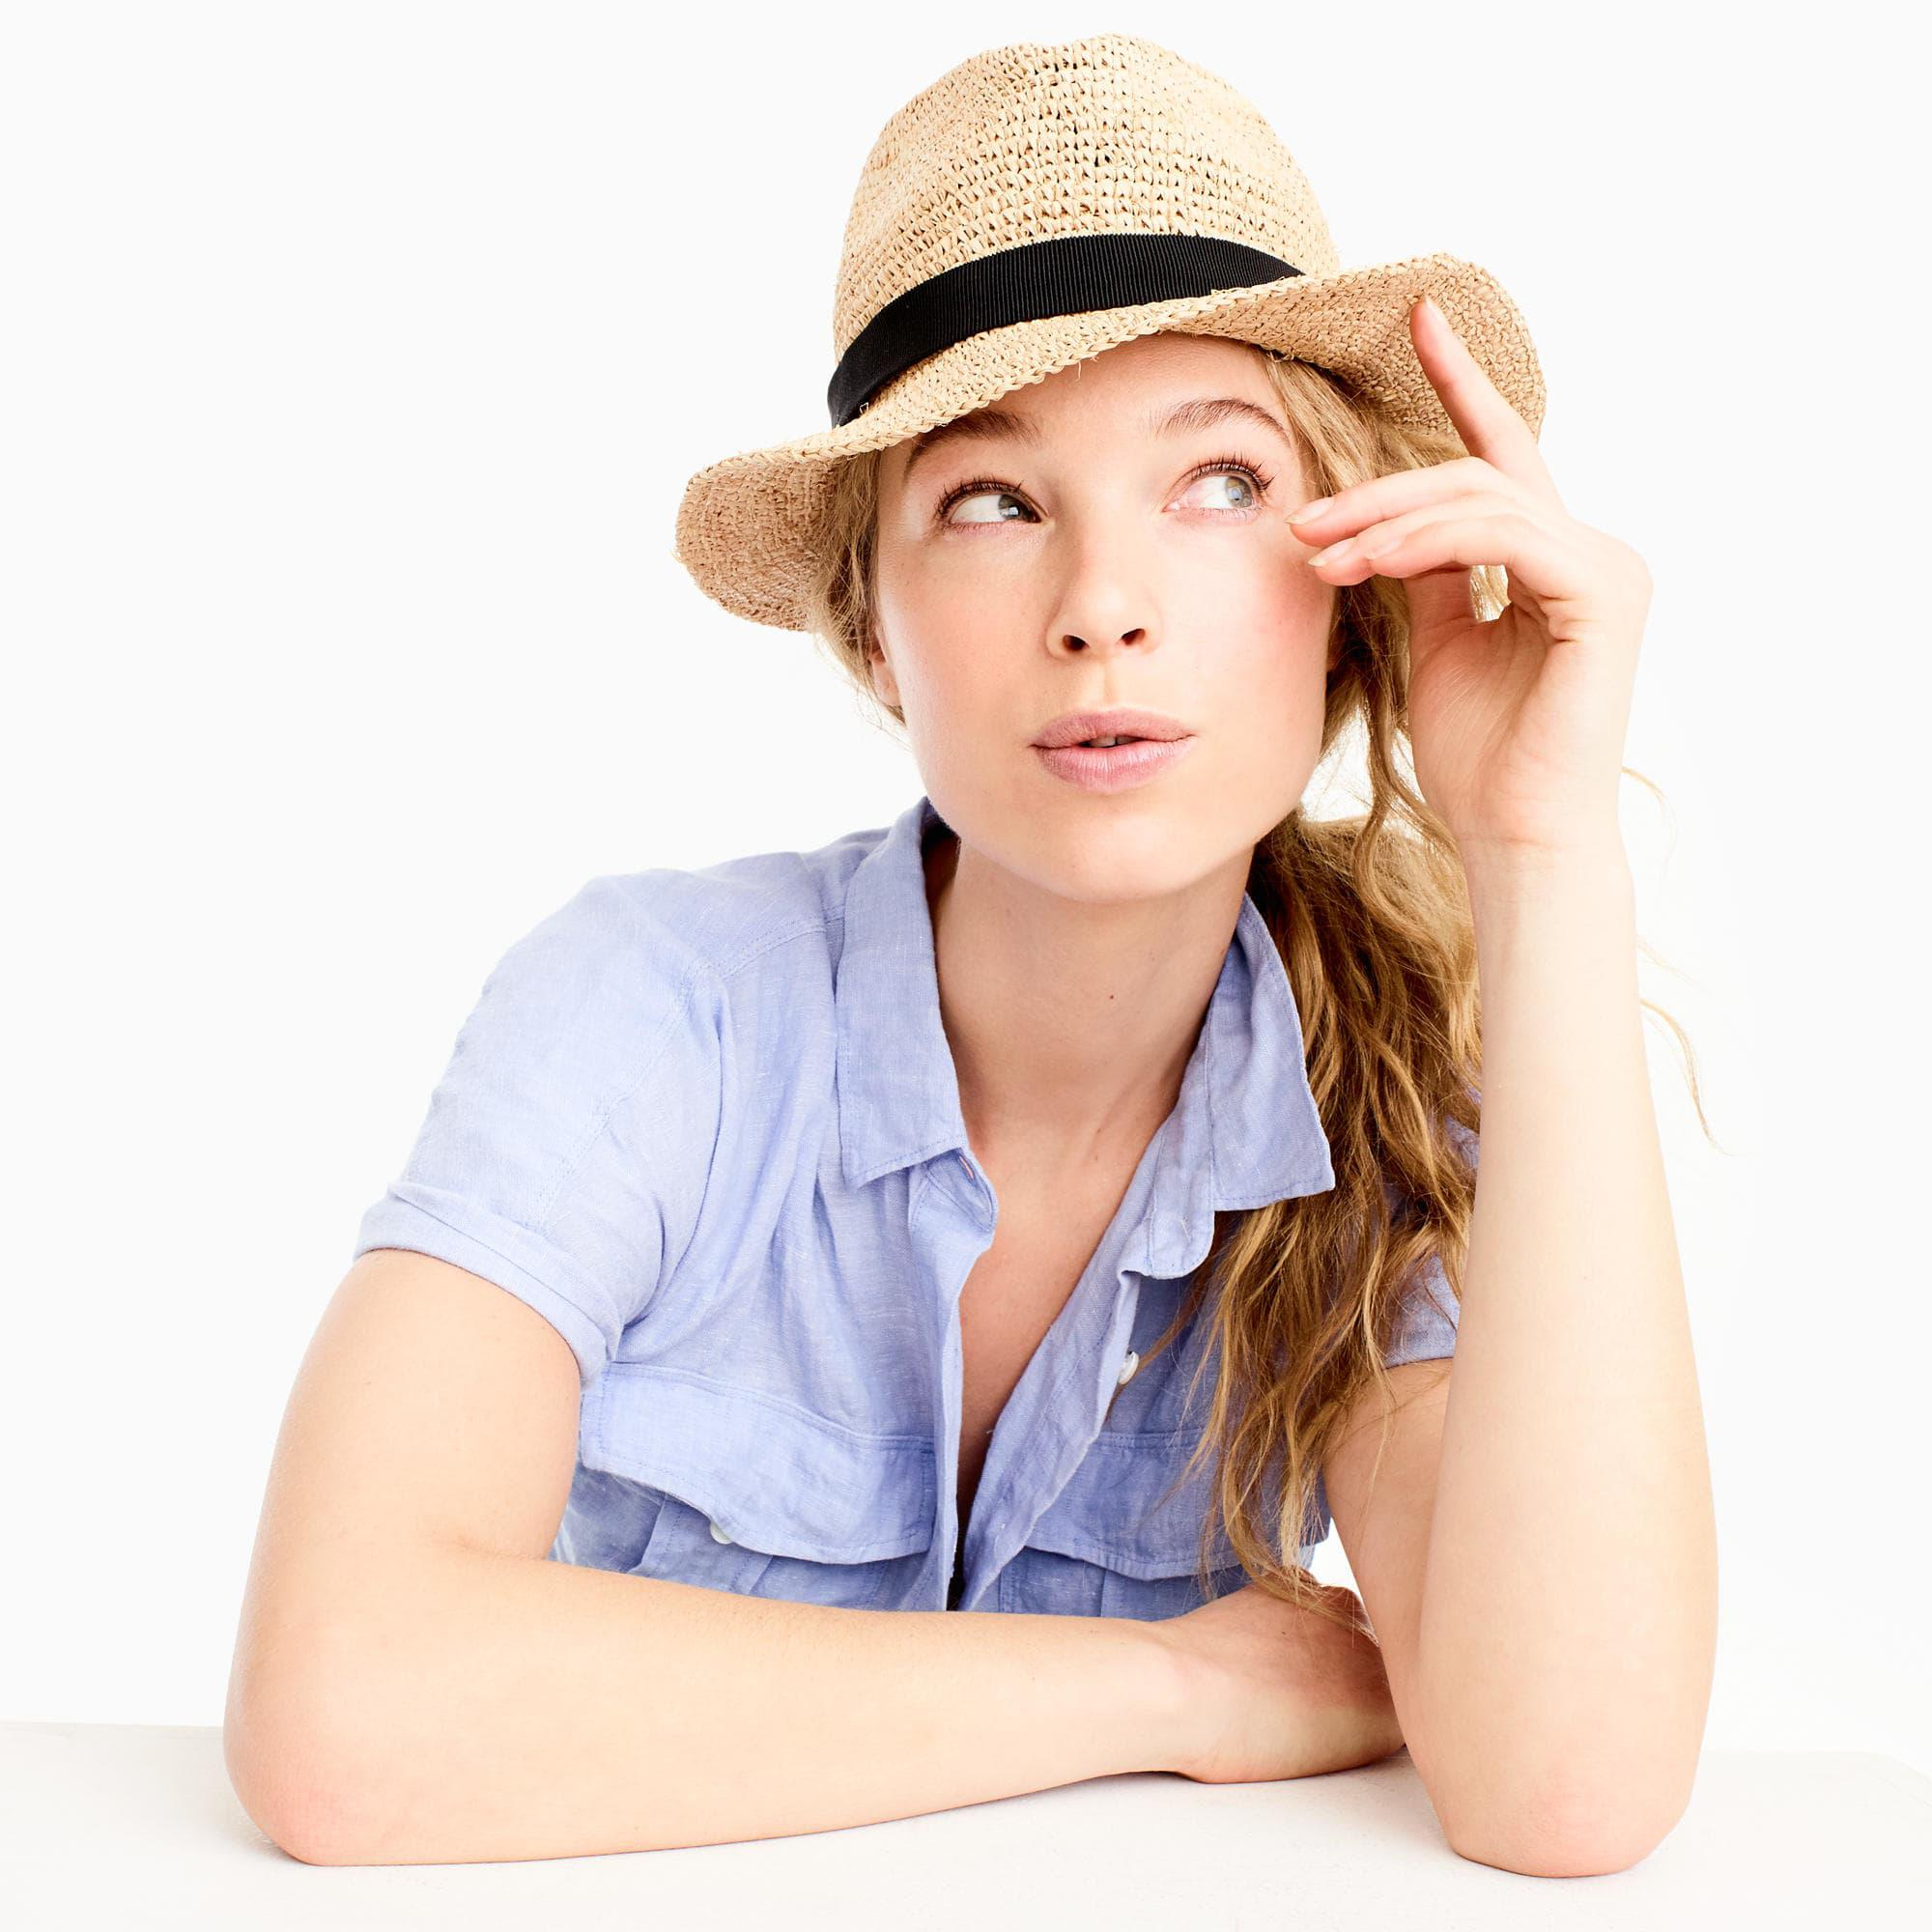 3505555a405a J.Crew Brown Packable Straw Hat. View fullscreen